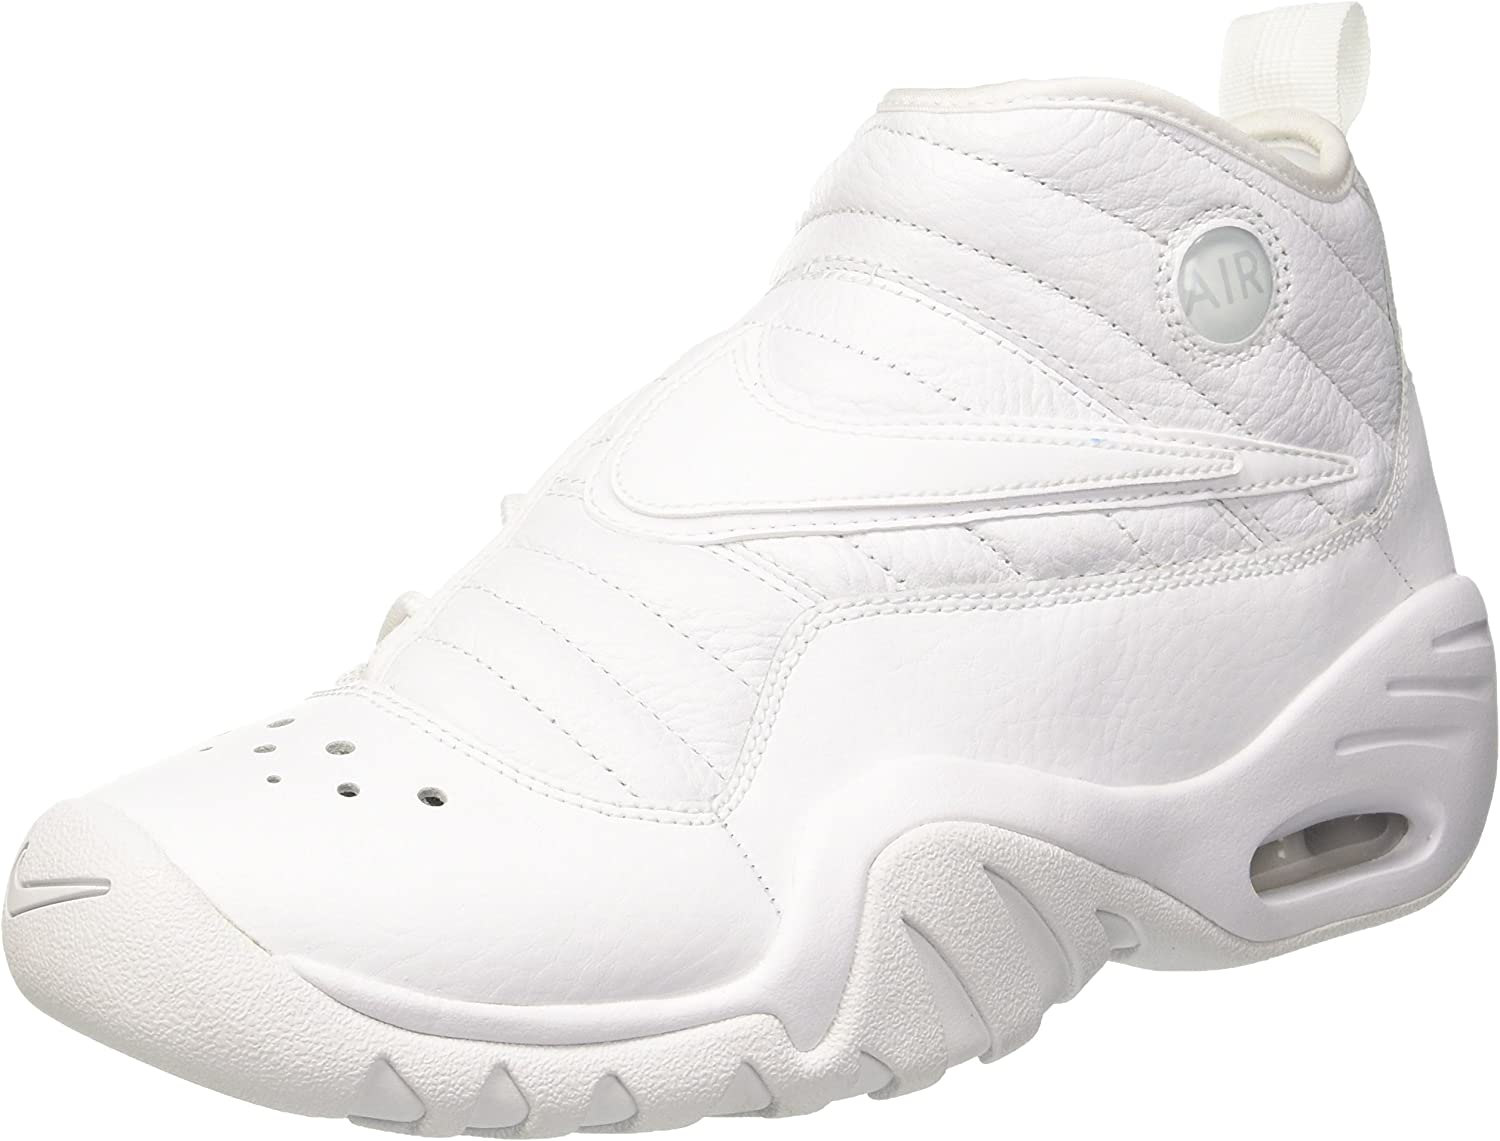 Nike Men's Air Shake Ndestrukt, White WhiteWhite, 7.5 M US